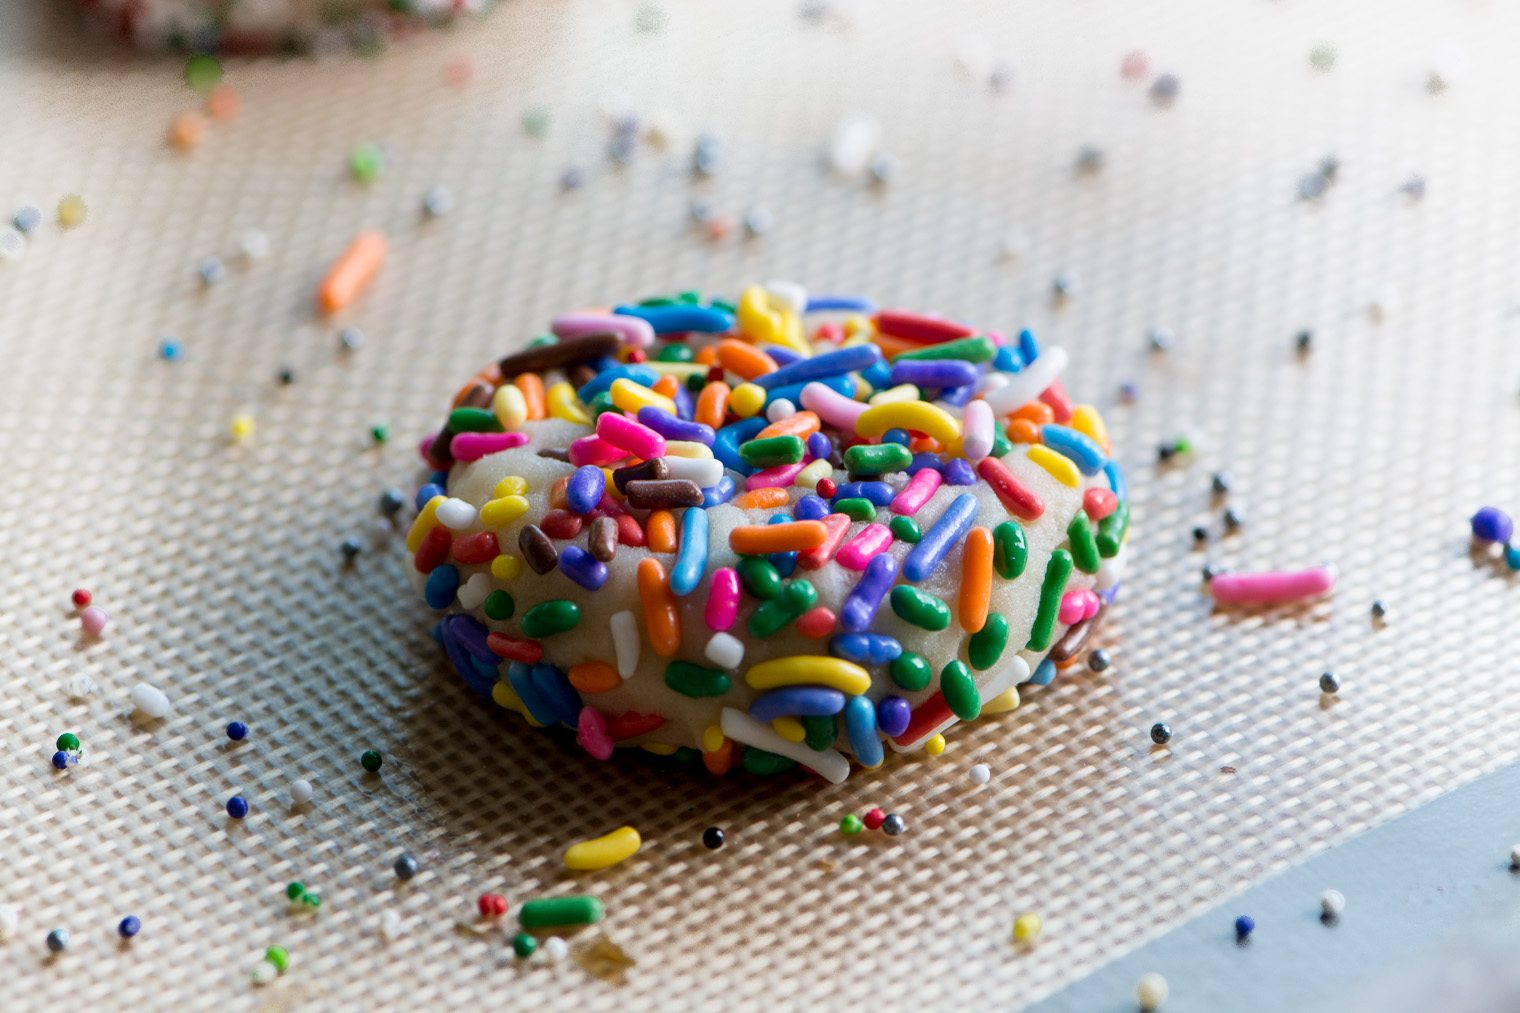 A sprinkle sugar cookie ready to be baked